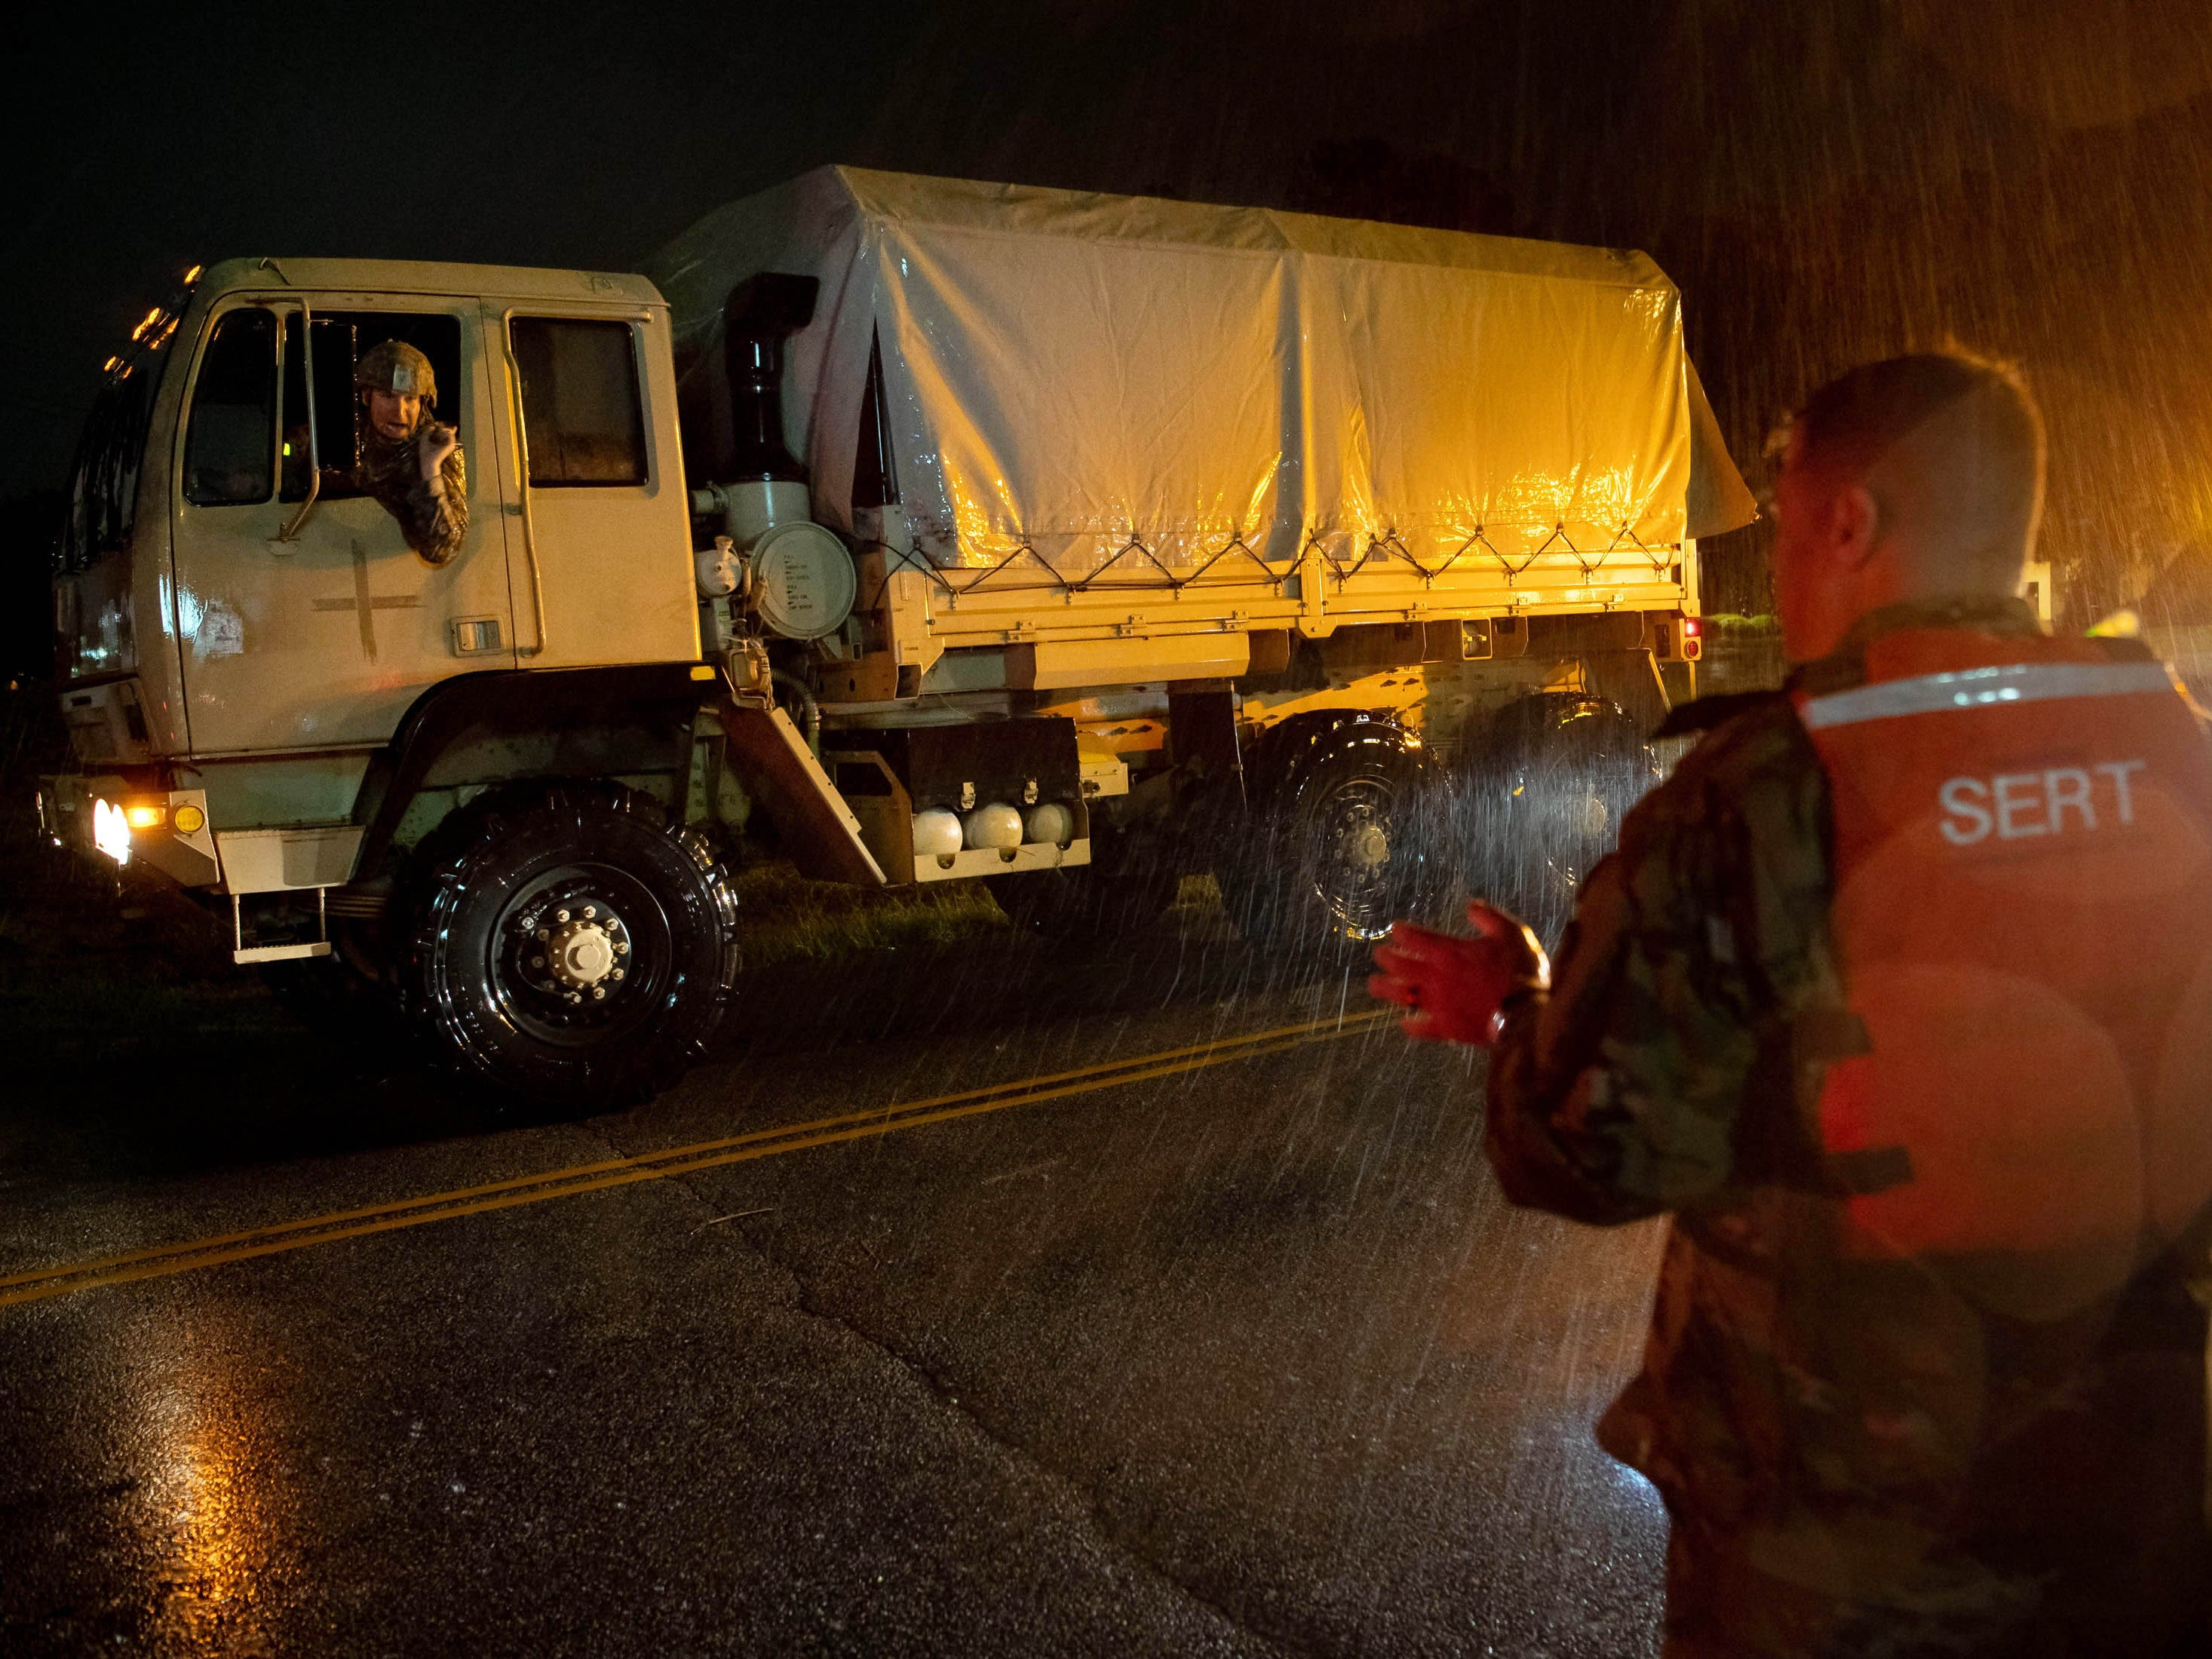 Command Sgt. Maj. Sid Baker, right, of the North Carolina National Guard, speaks with the driver of a National Guard truck carrying evacuees from a flooded neighborhood as rain from tropical storm Florence continues to fall on Lumberton, N.C. on Sept. 15, 2018.